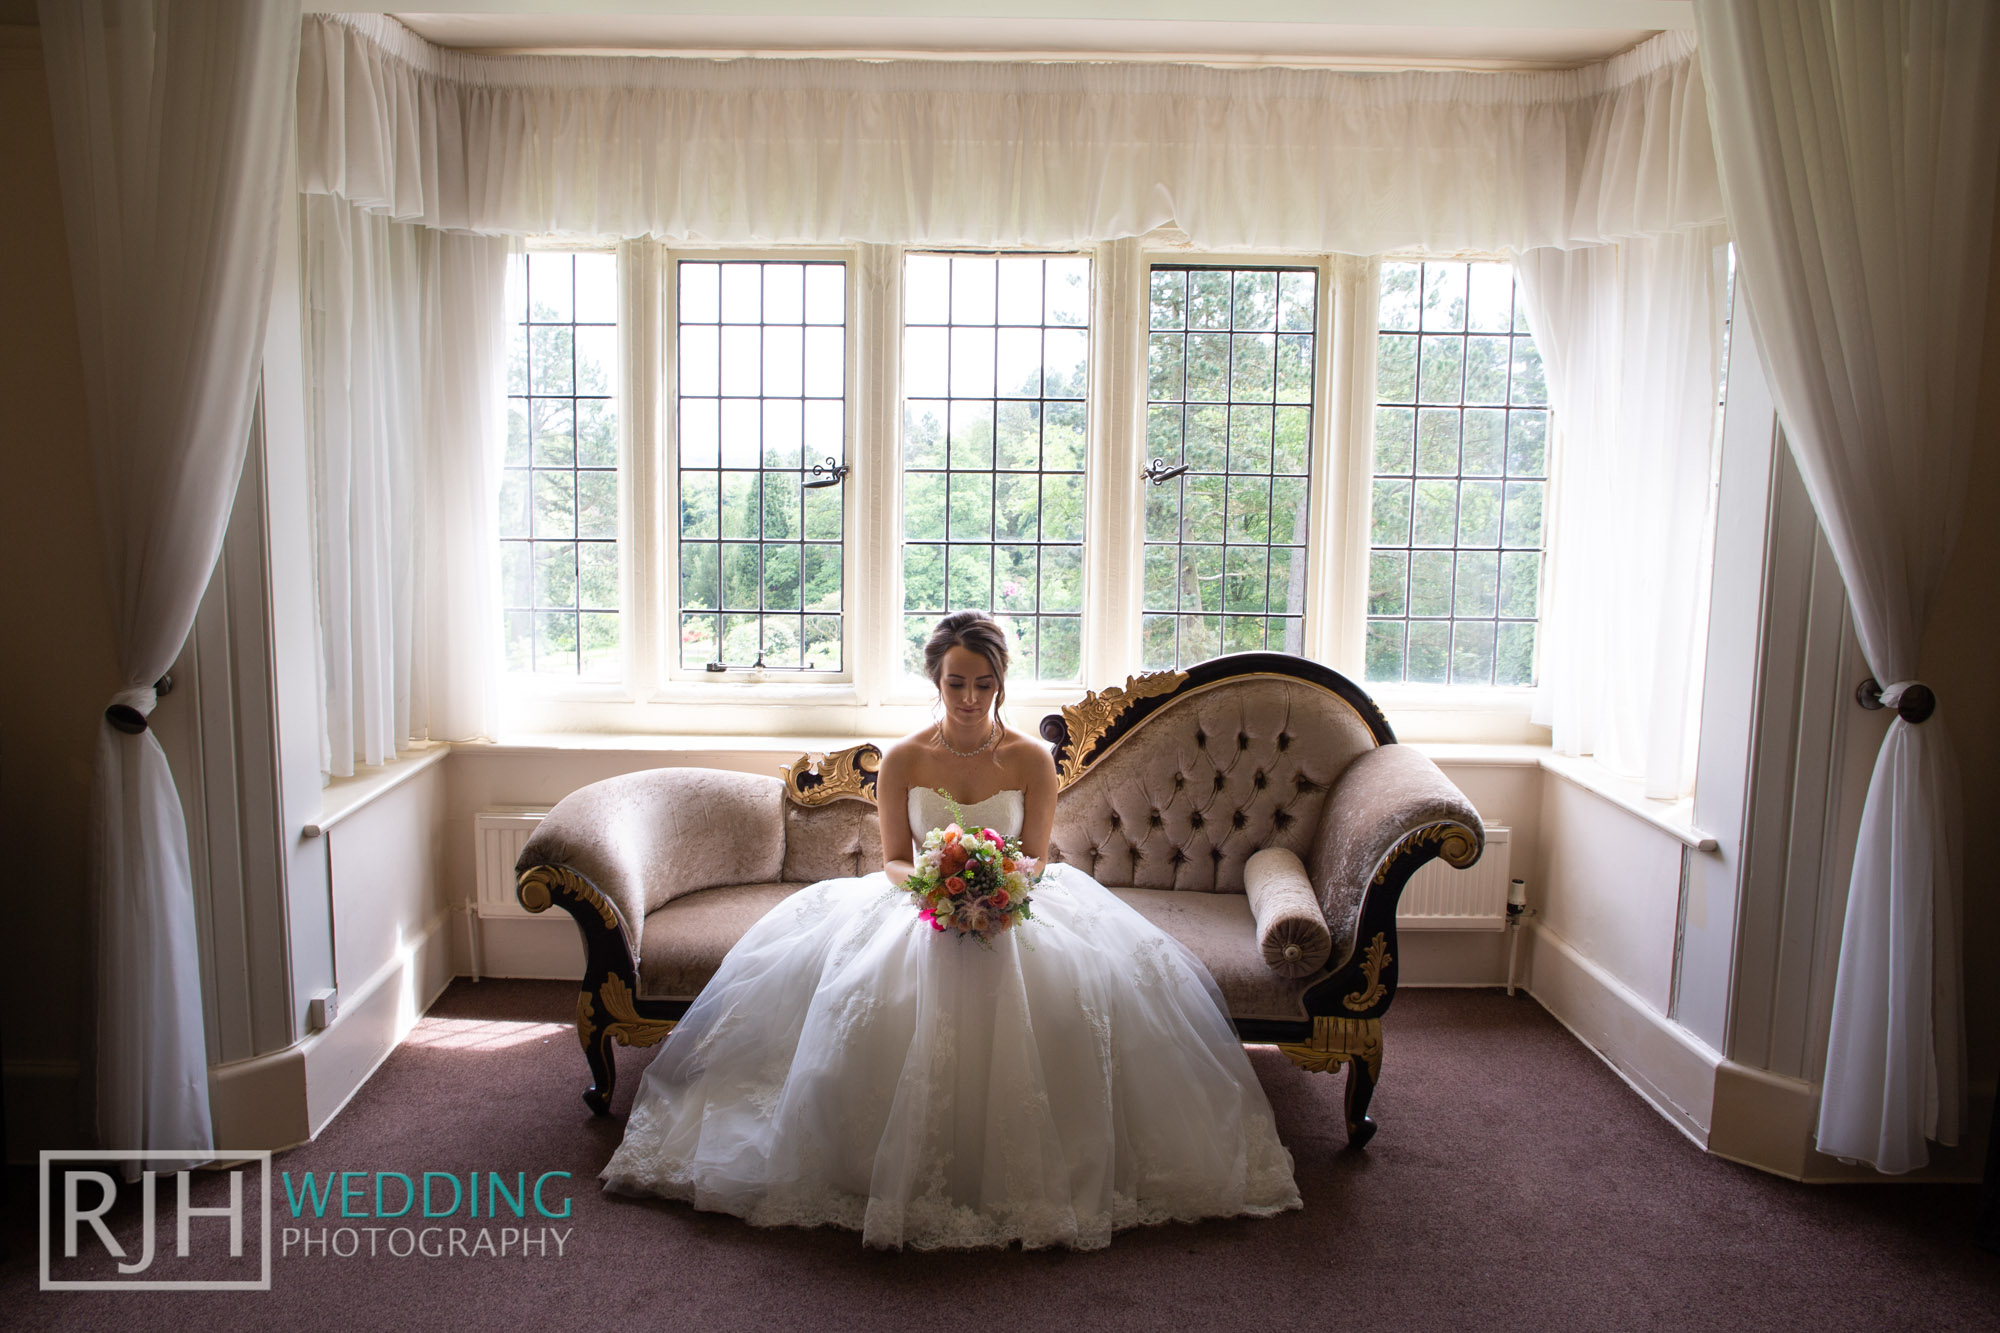 Whirlowbrook Hall Wedding Photography_Jack & Lydia_023_3C2A3109.jpg